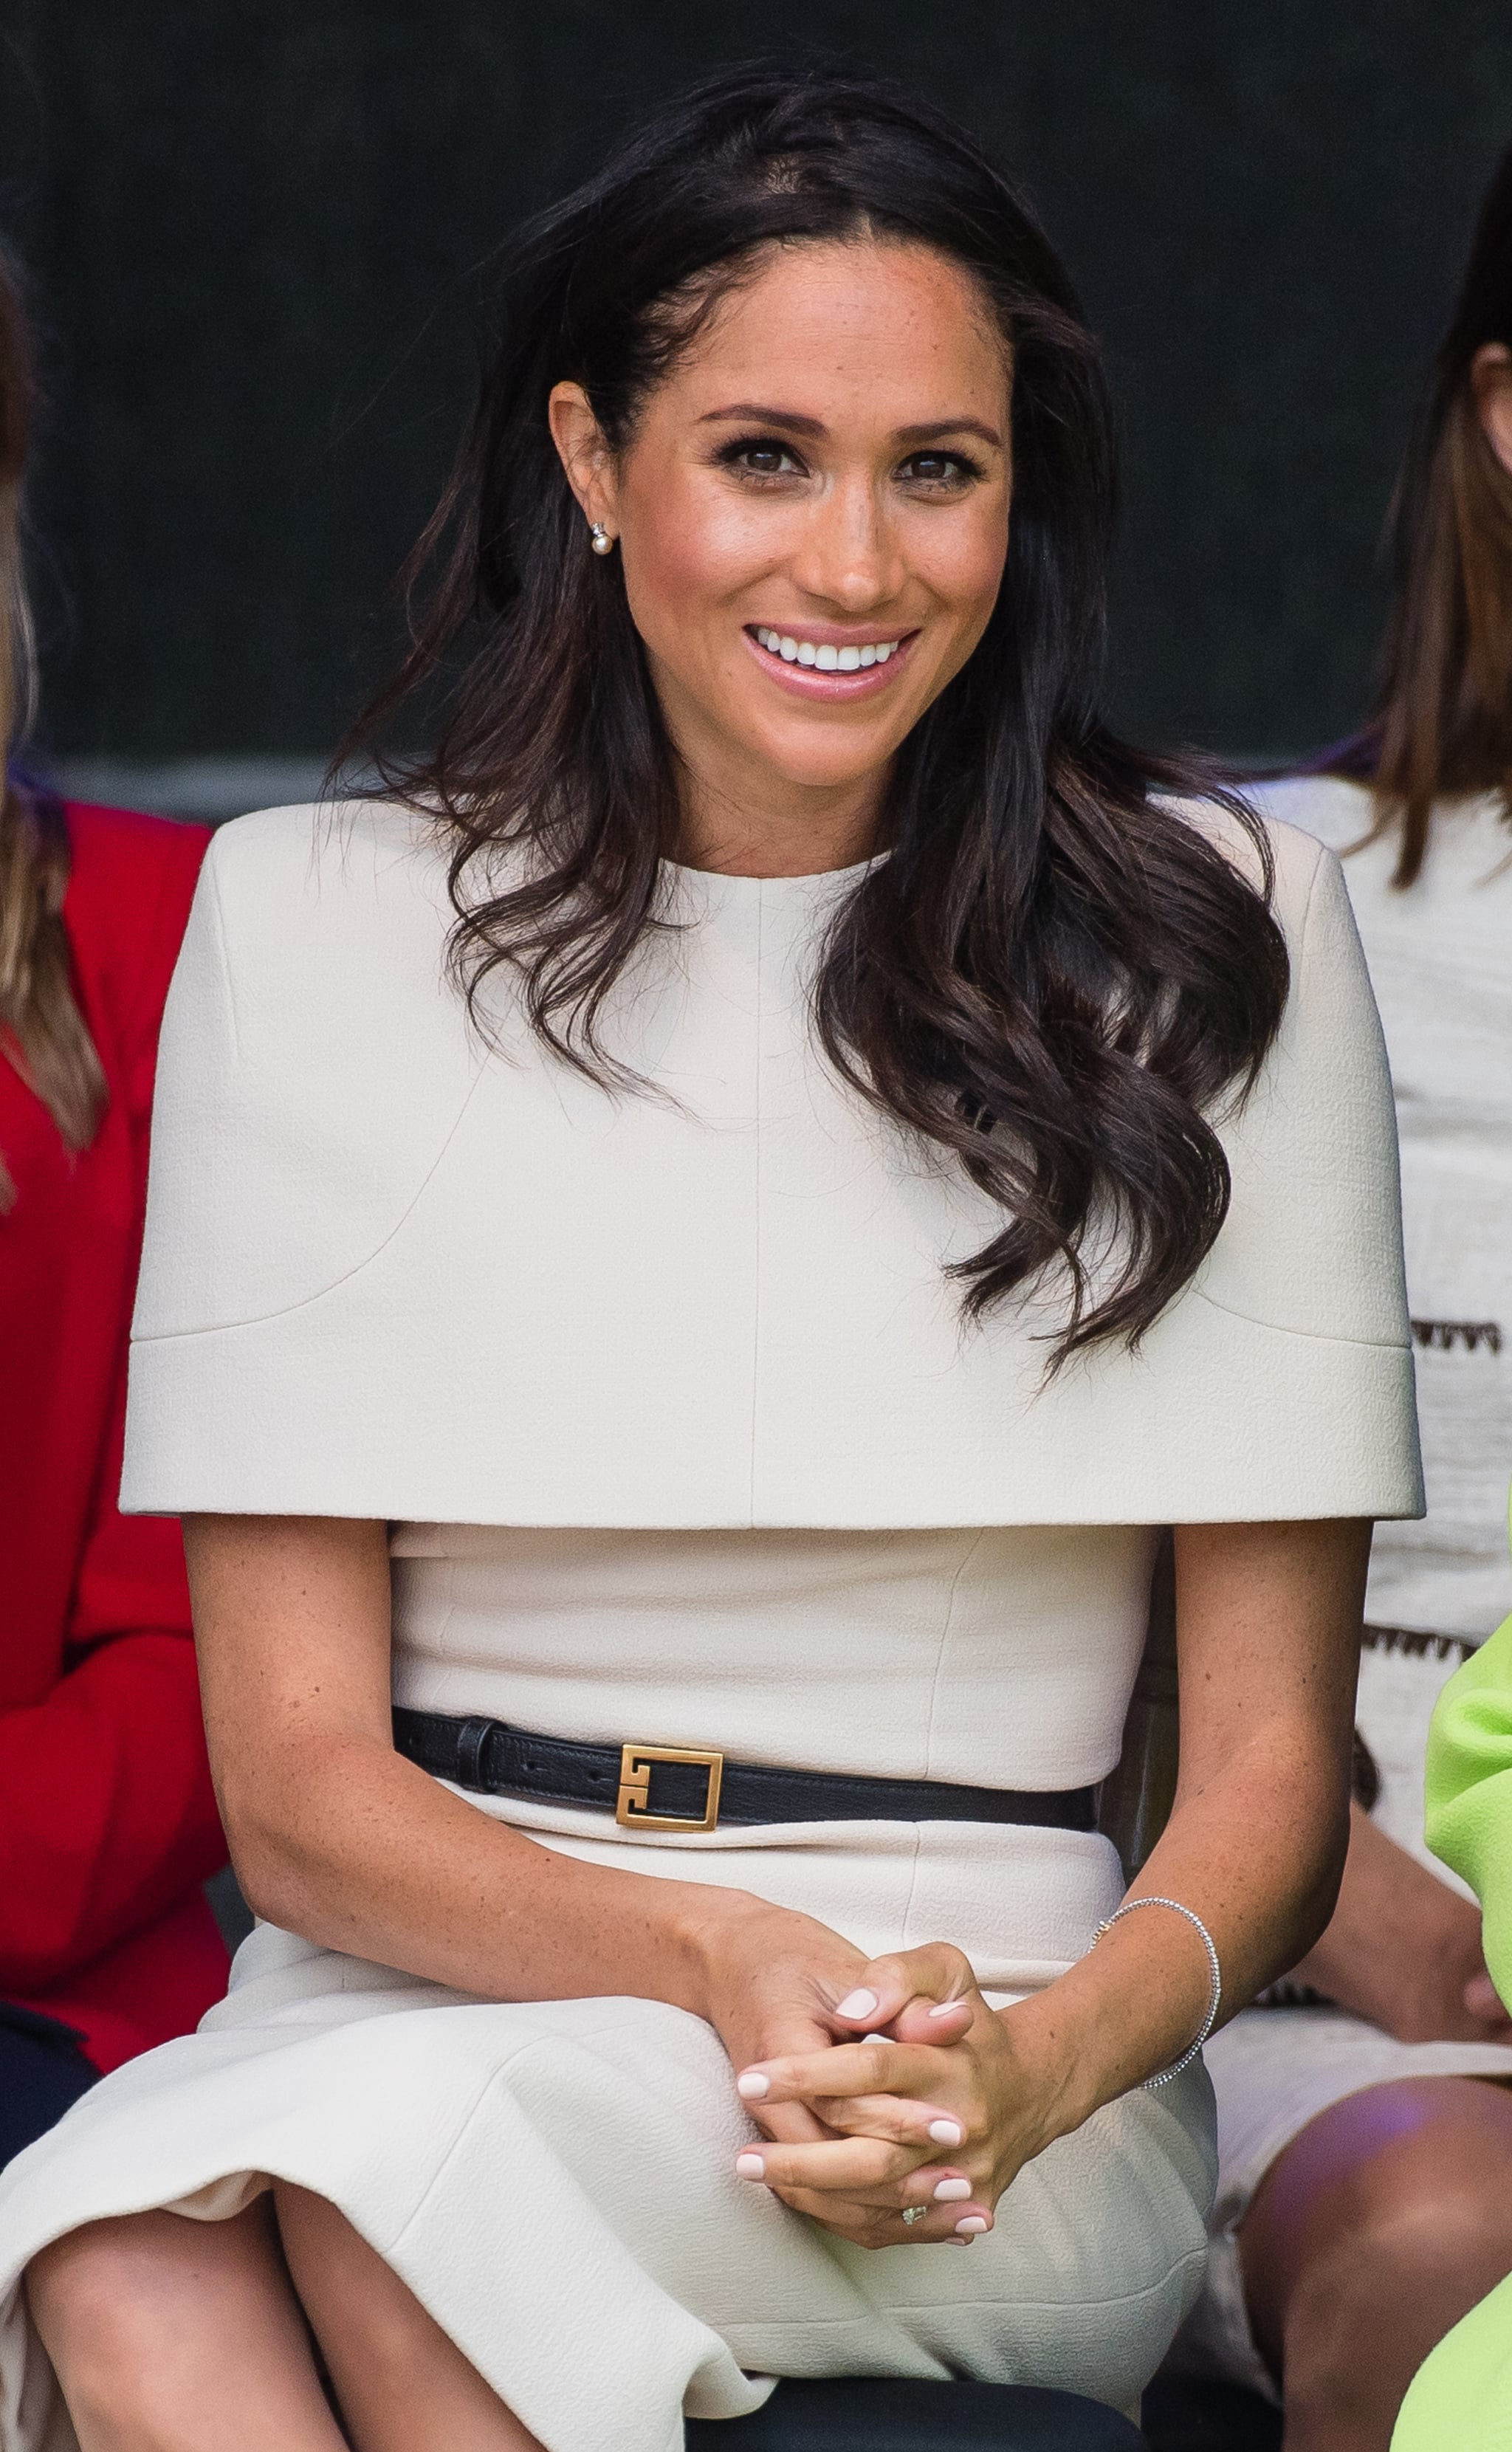 WIDNESS, ENGLAND - JUNE 14:  Meghan, Duchess of Sussex opens the new Mersey Gateway Bridge on June 14, 2018 in Widness, England.  (Photo by Samir Hussein/Samir Hussein/WireImage)